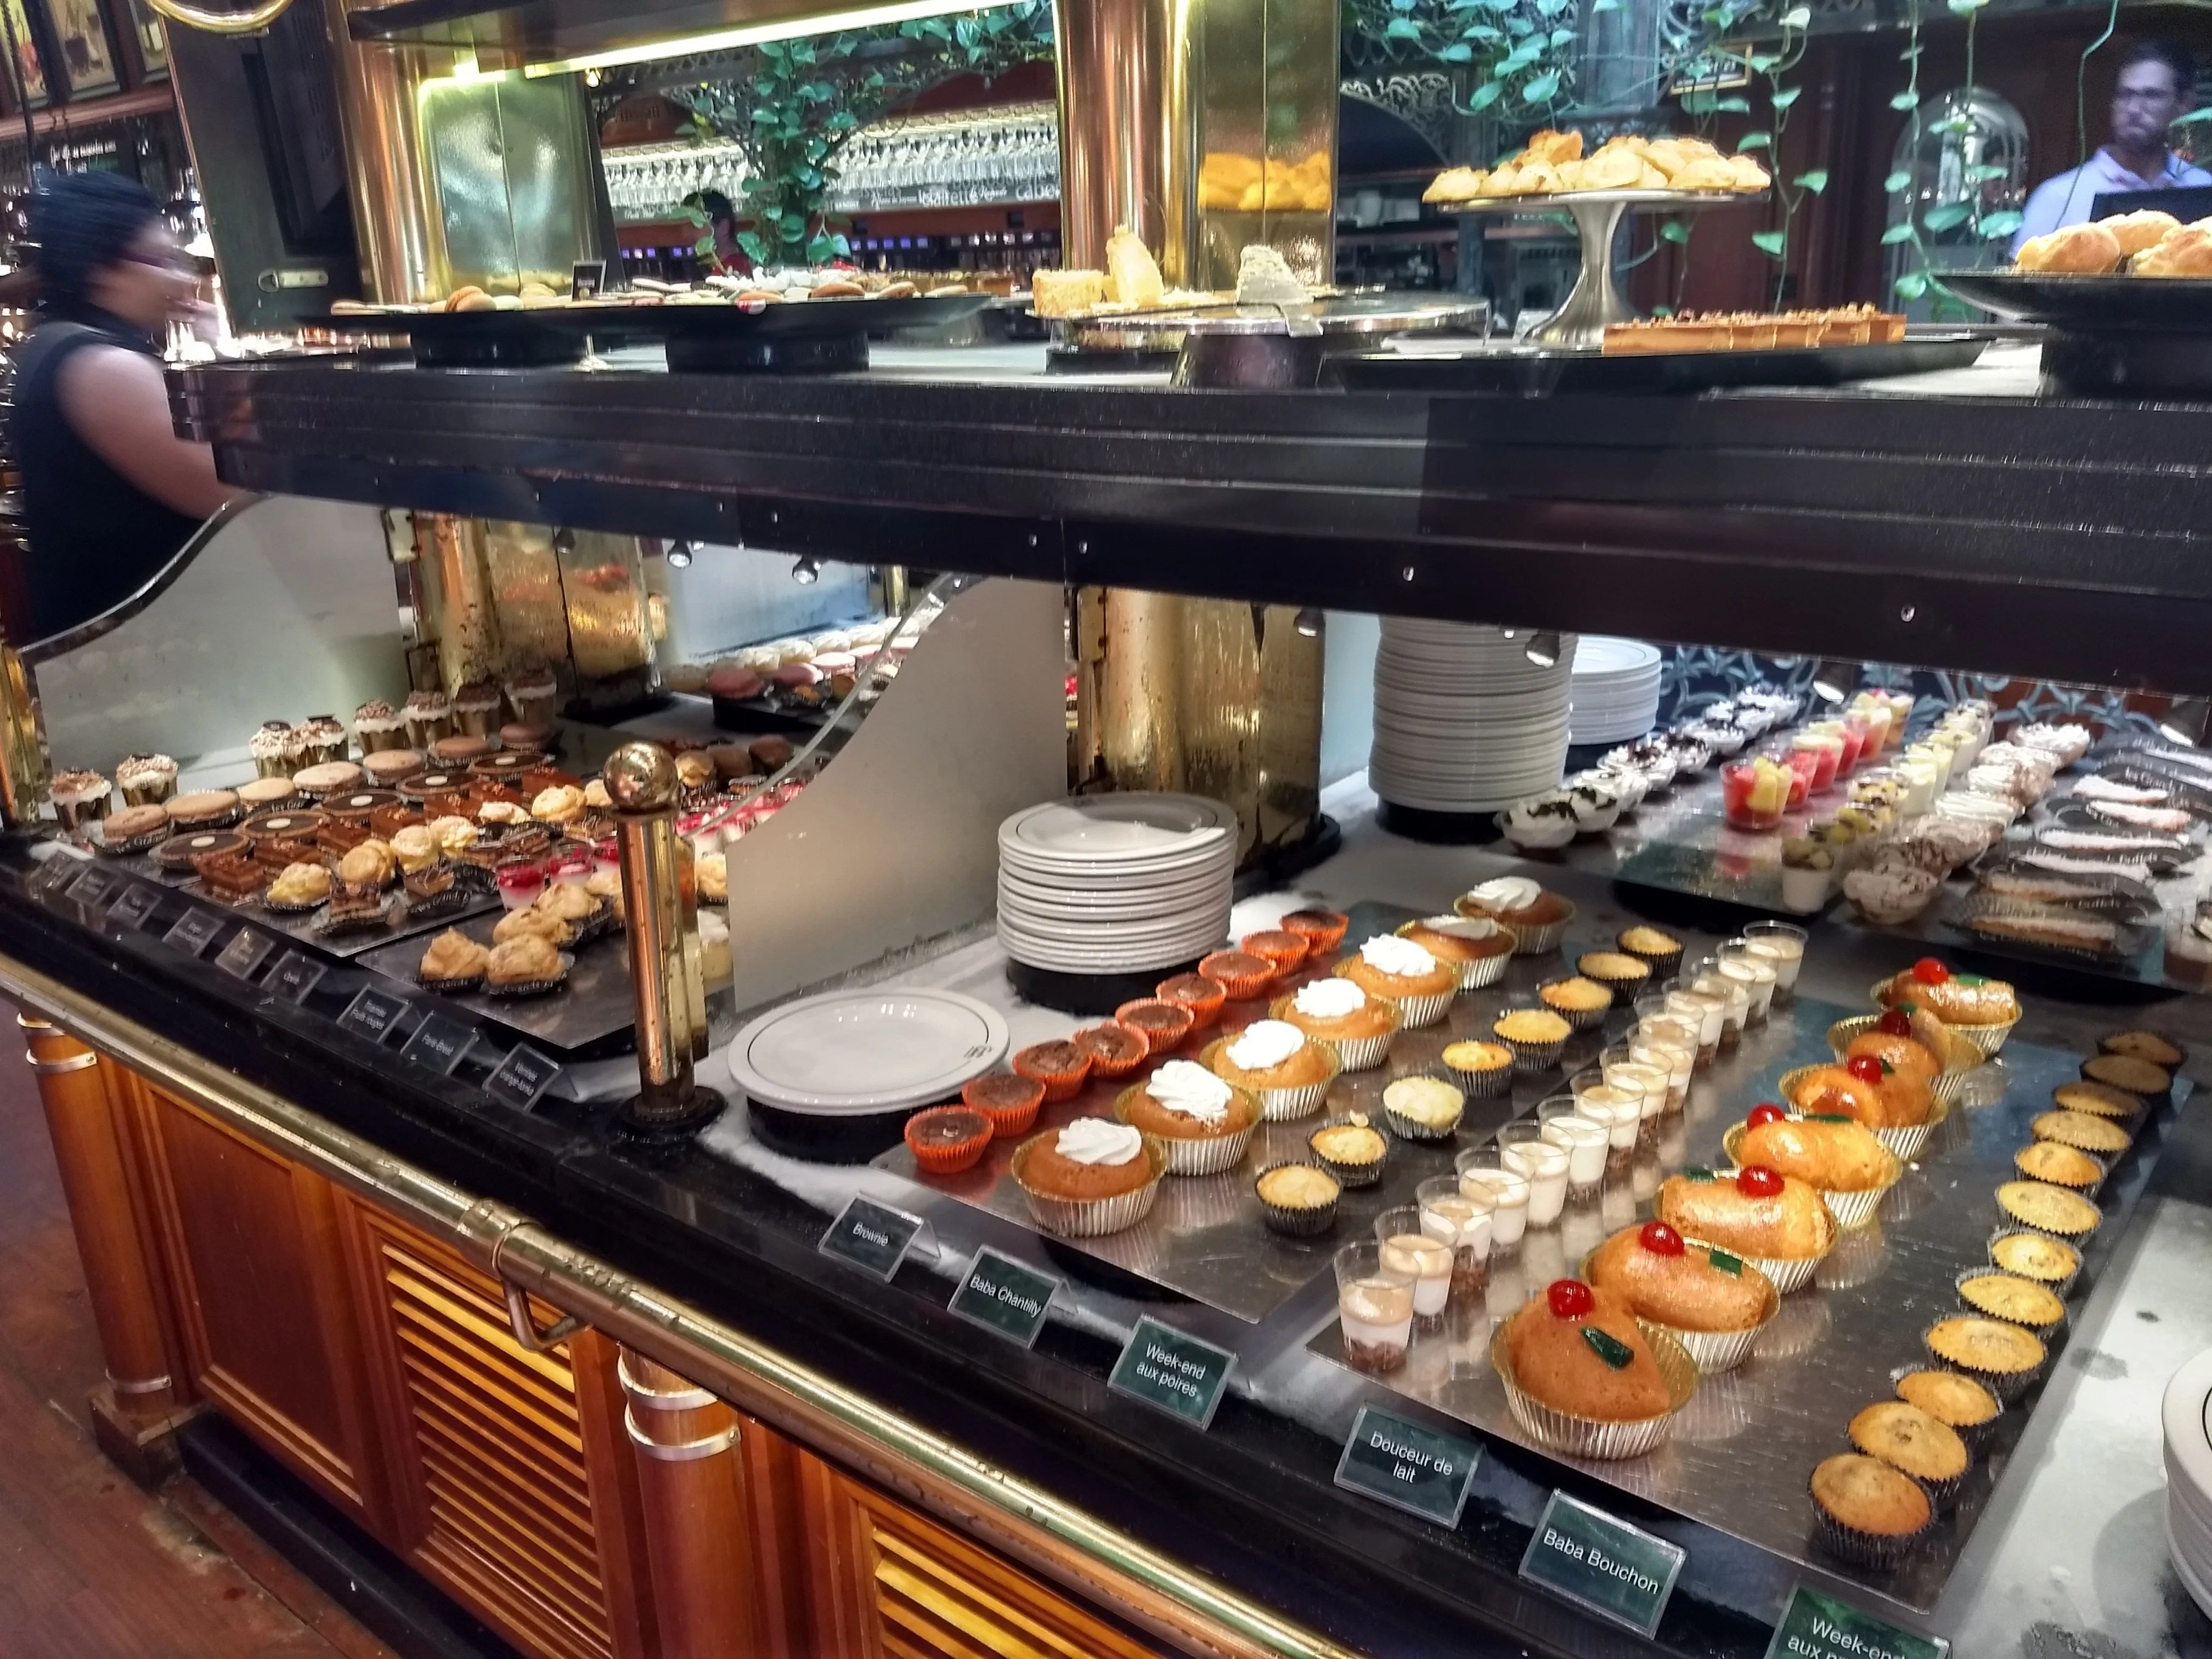 Les Grands Buffets Narbonne Francia Les Grands Buffets En Narbona 1 Opiniones Y 37 Fotos